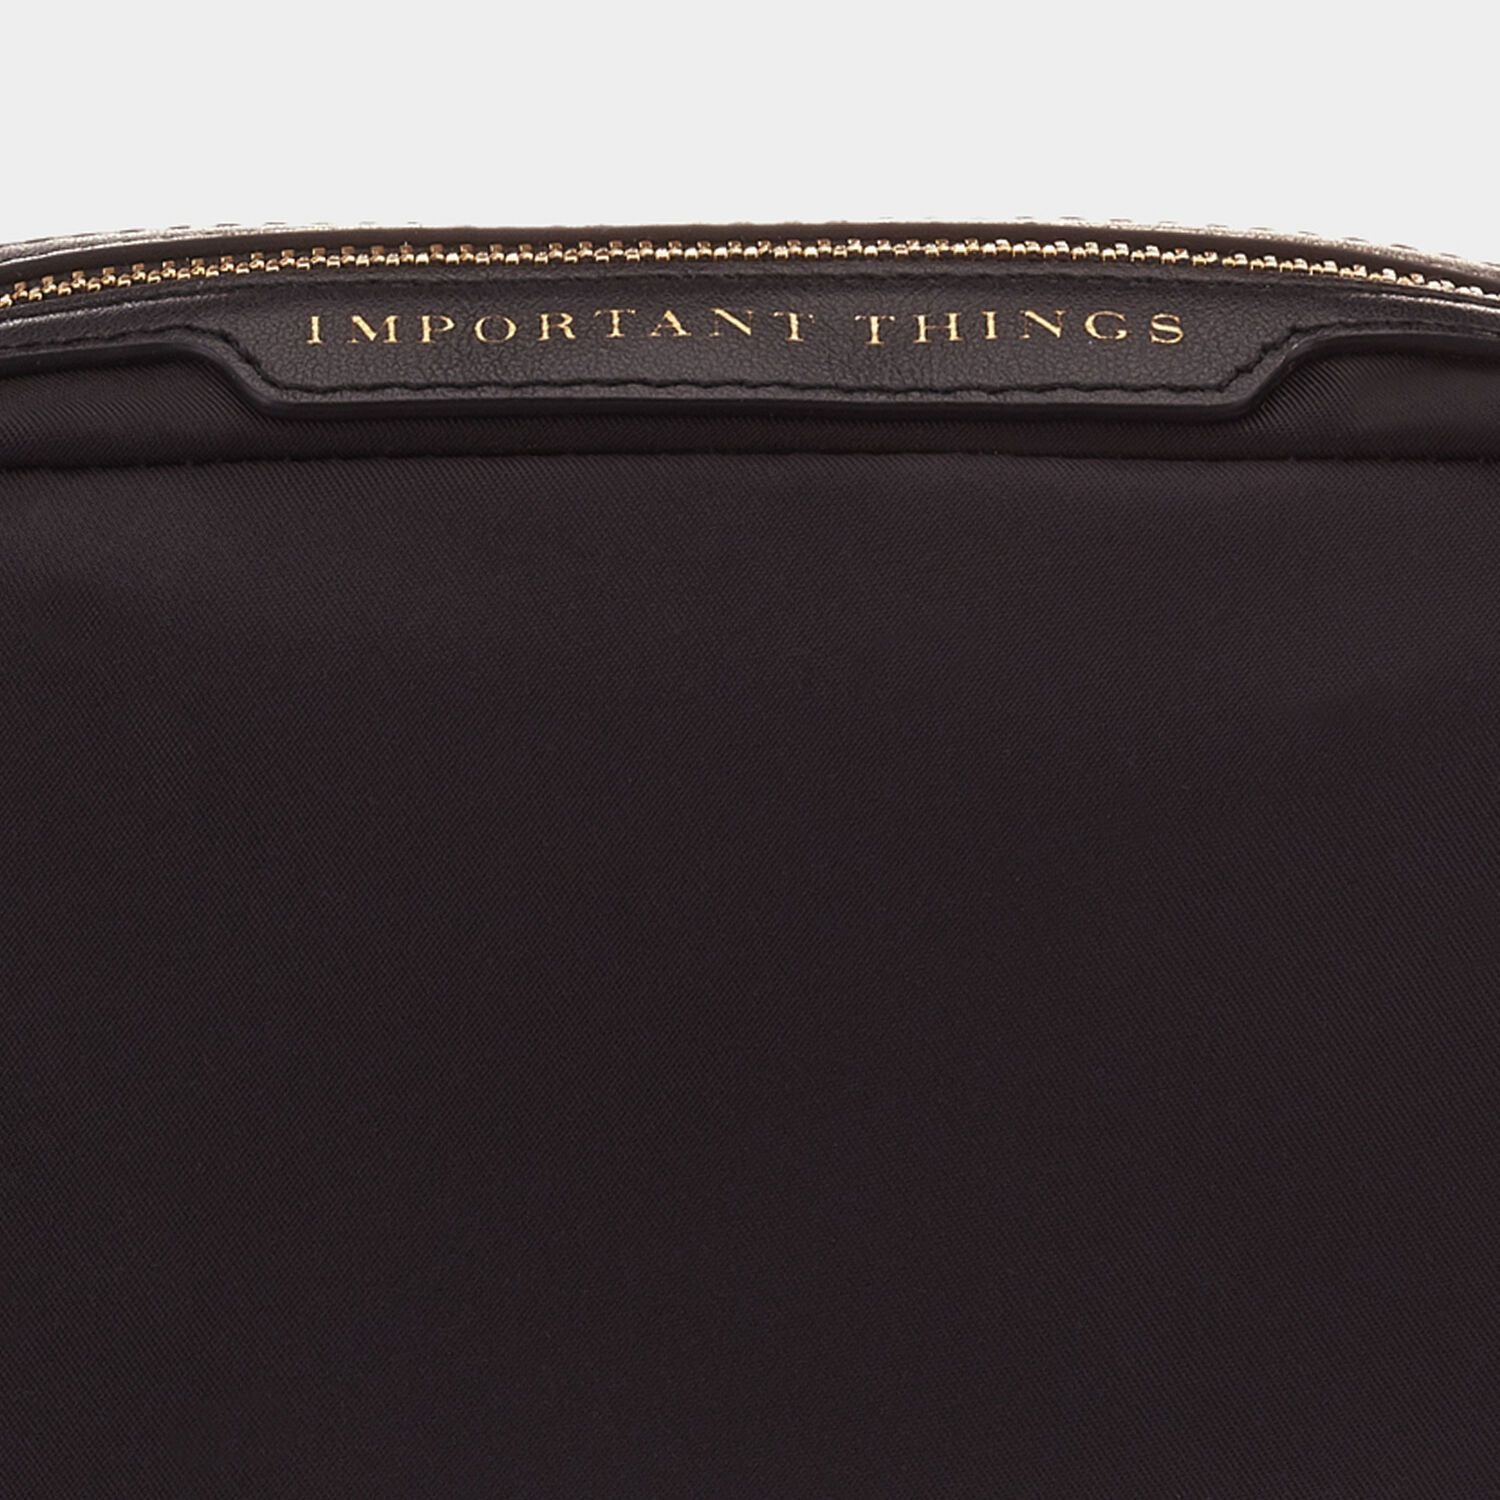 Important Things Pouch